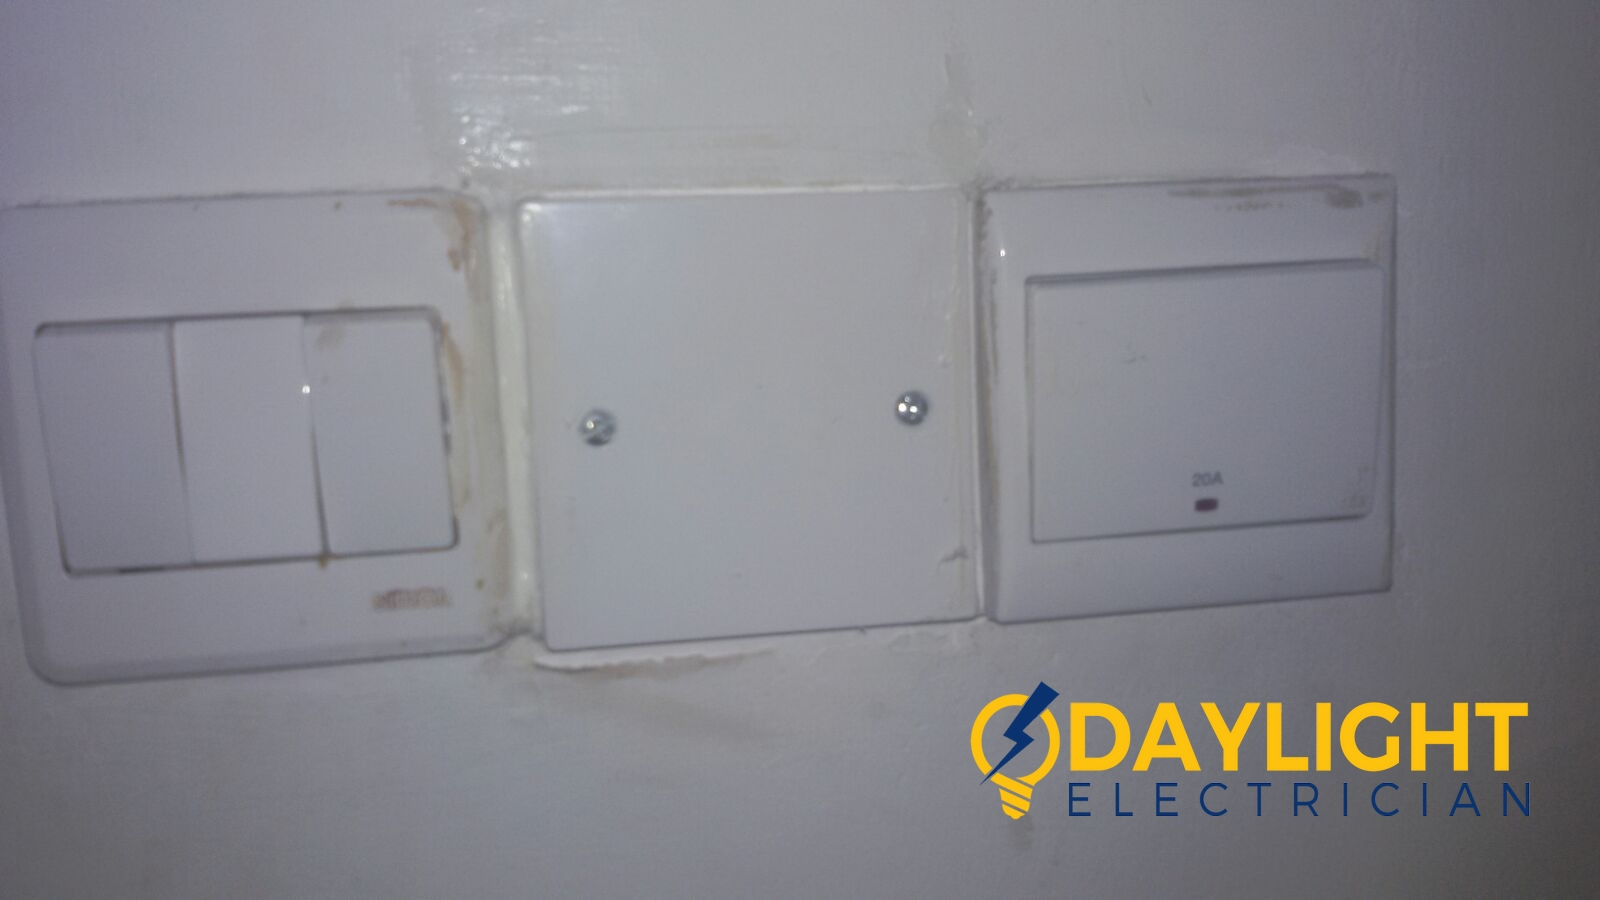 solve-water-heater-power-fault-troubleshoot-rewire-proper-cable-connection-electrician-singapore-landed-loyang-1_wm